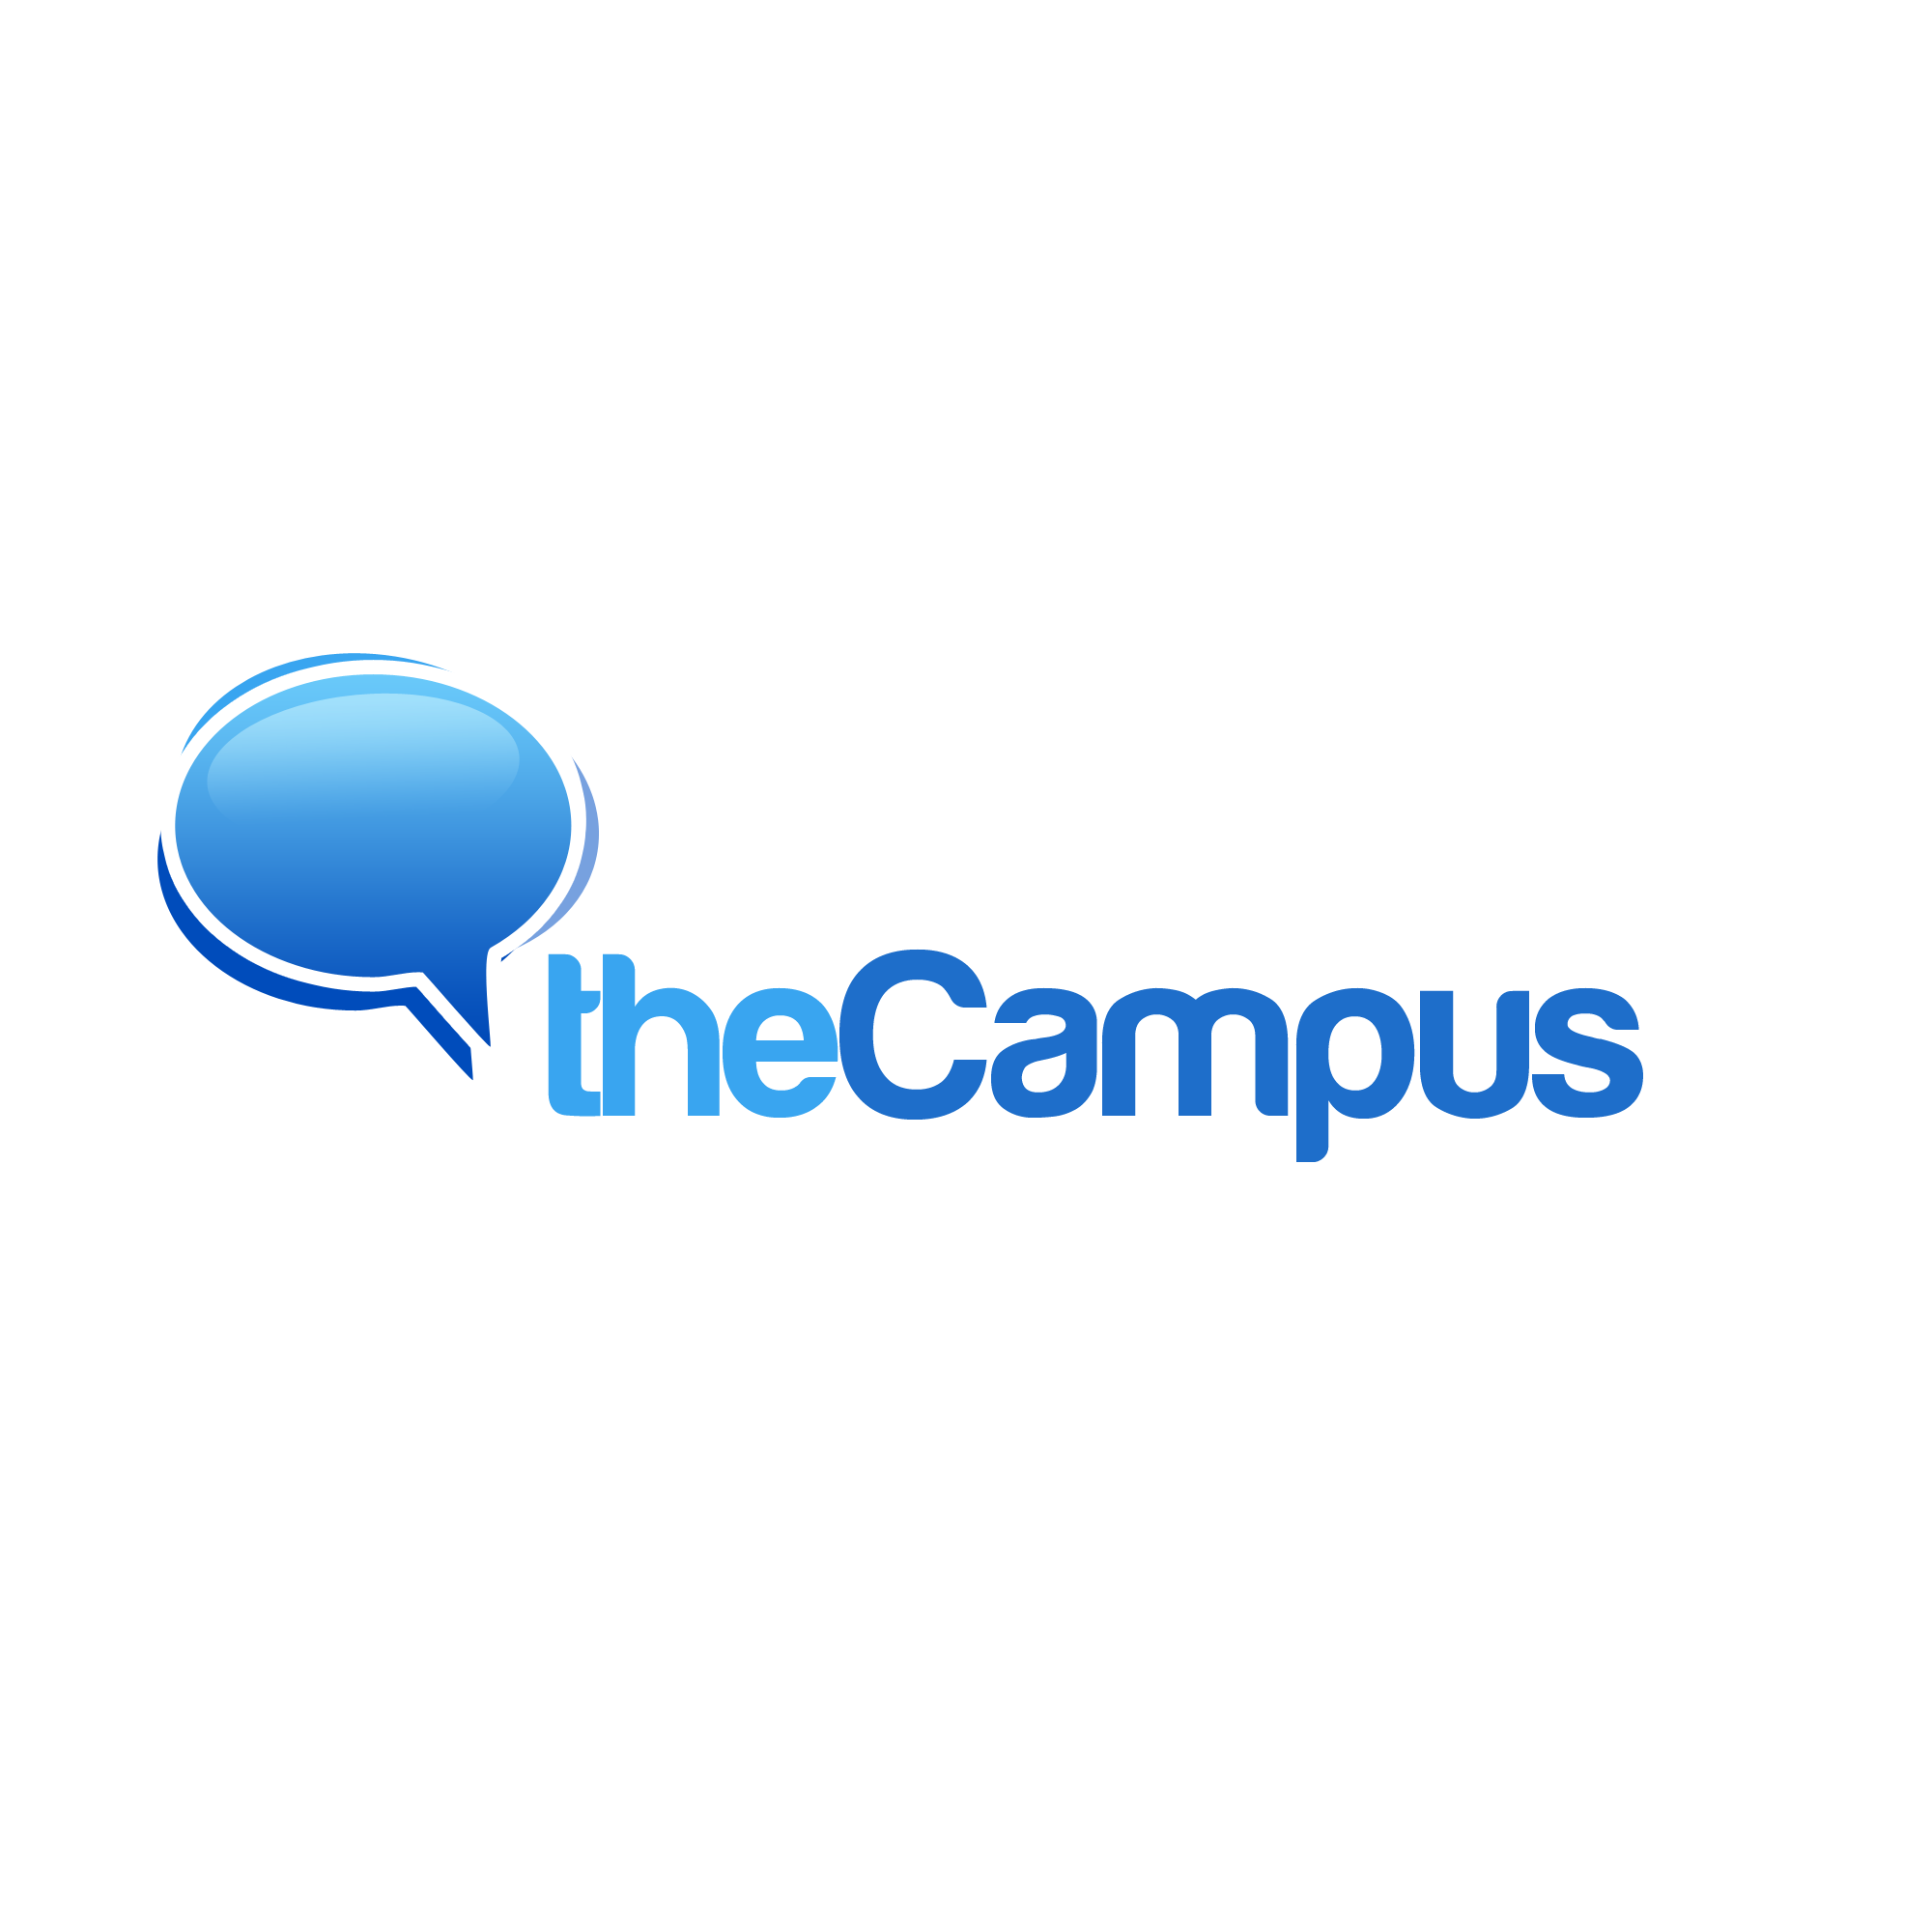 Logo Design by Kenneth Joel - Entry No. 41 in the Logo Design Contest theCampus Logo Design.